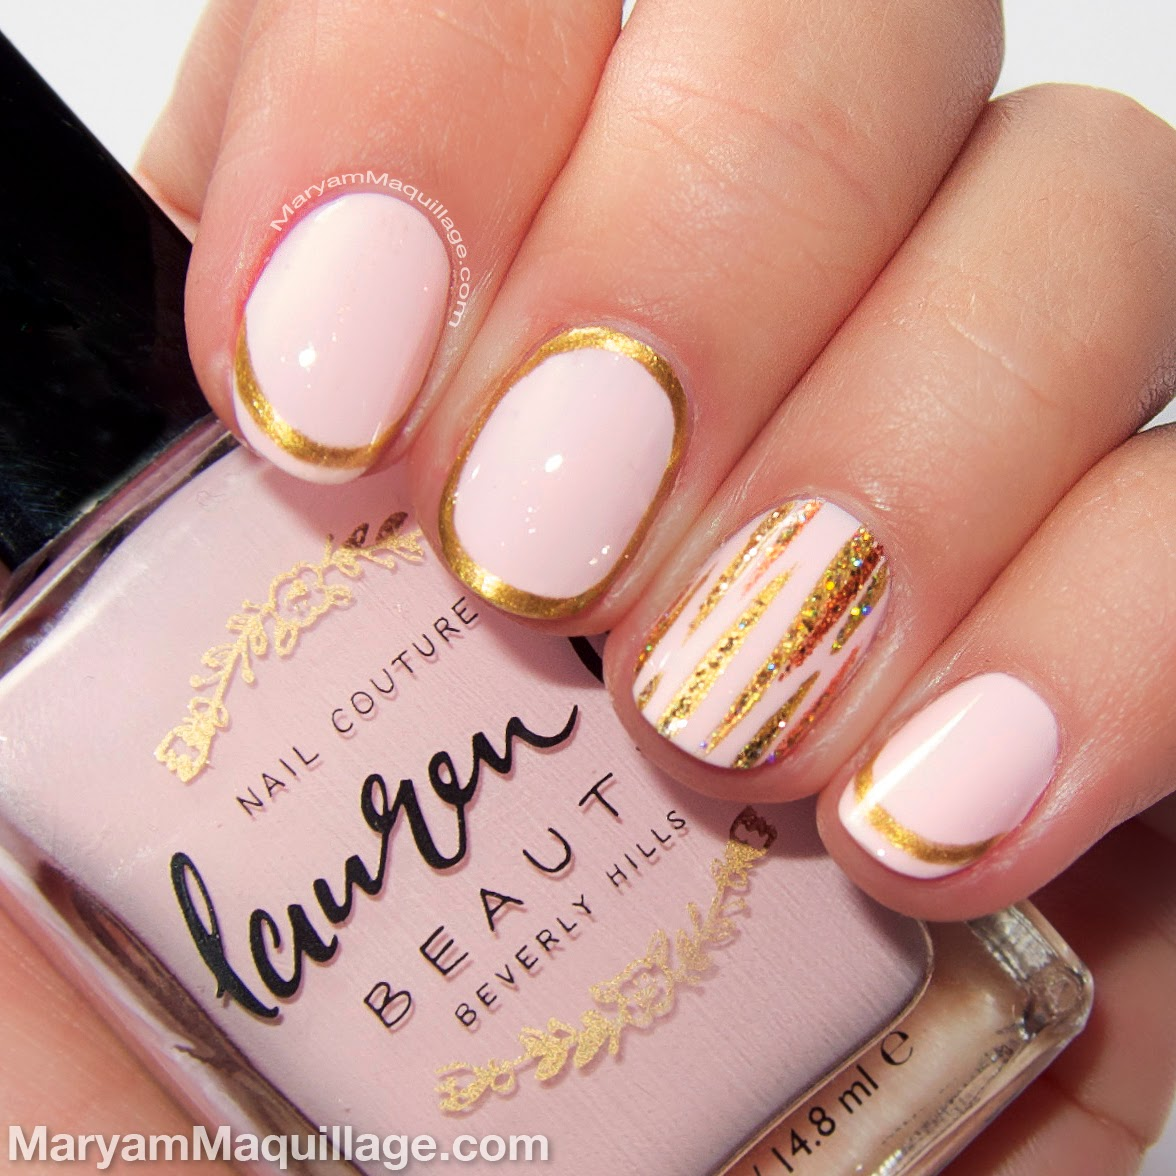 maryam maquillage spring beauty trend pastel nailart